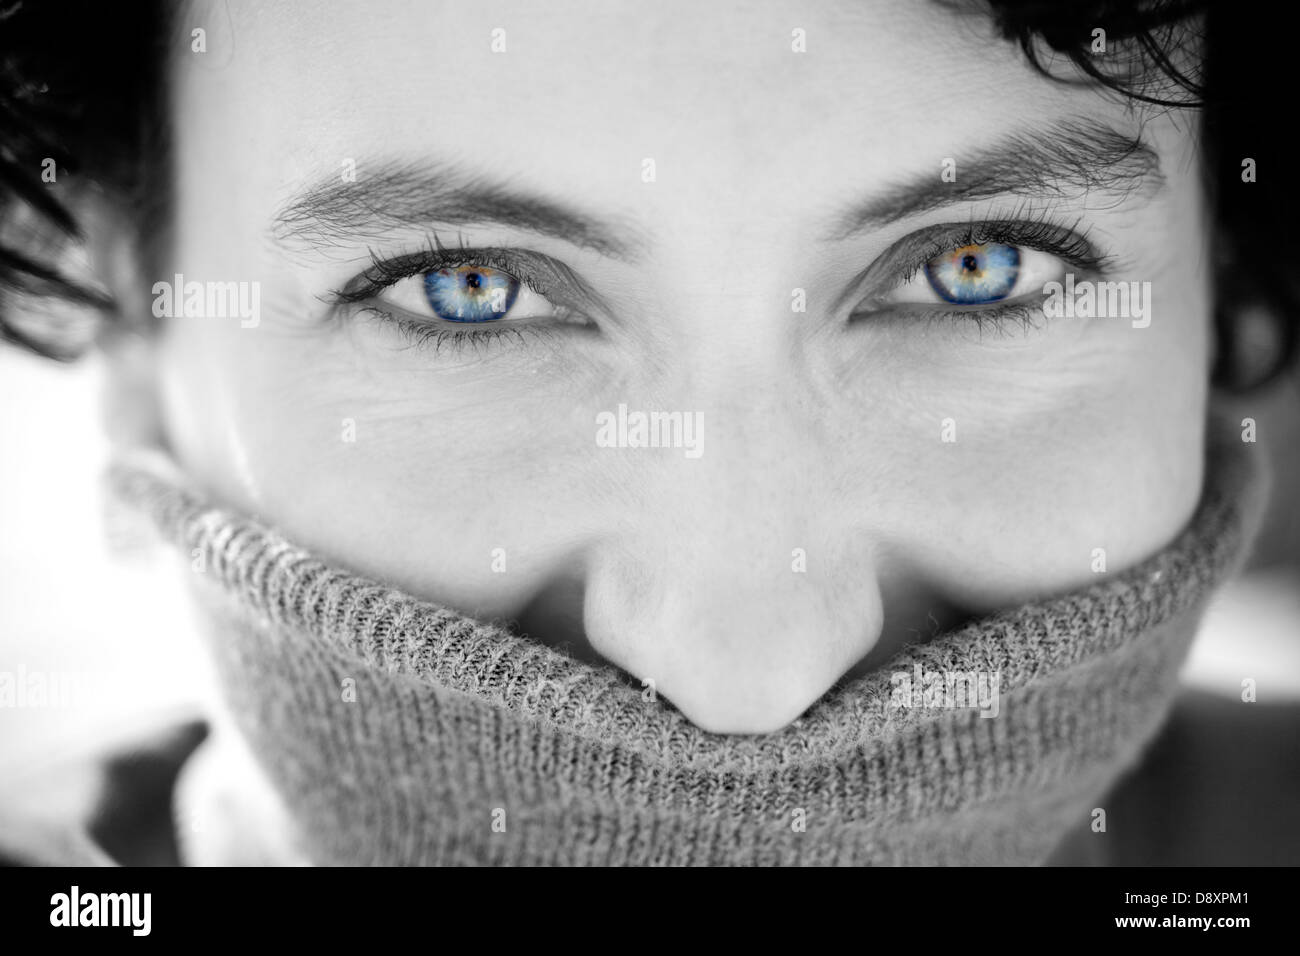 Portrait of a young shy woman with blue eyes smiling - Stock Image